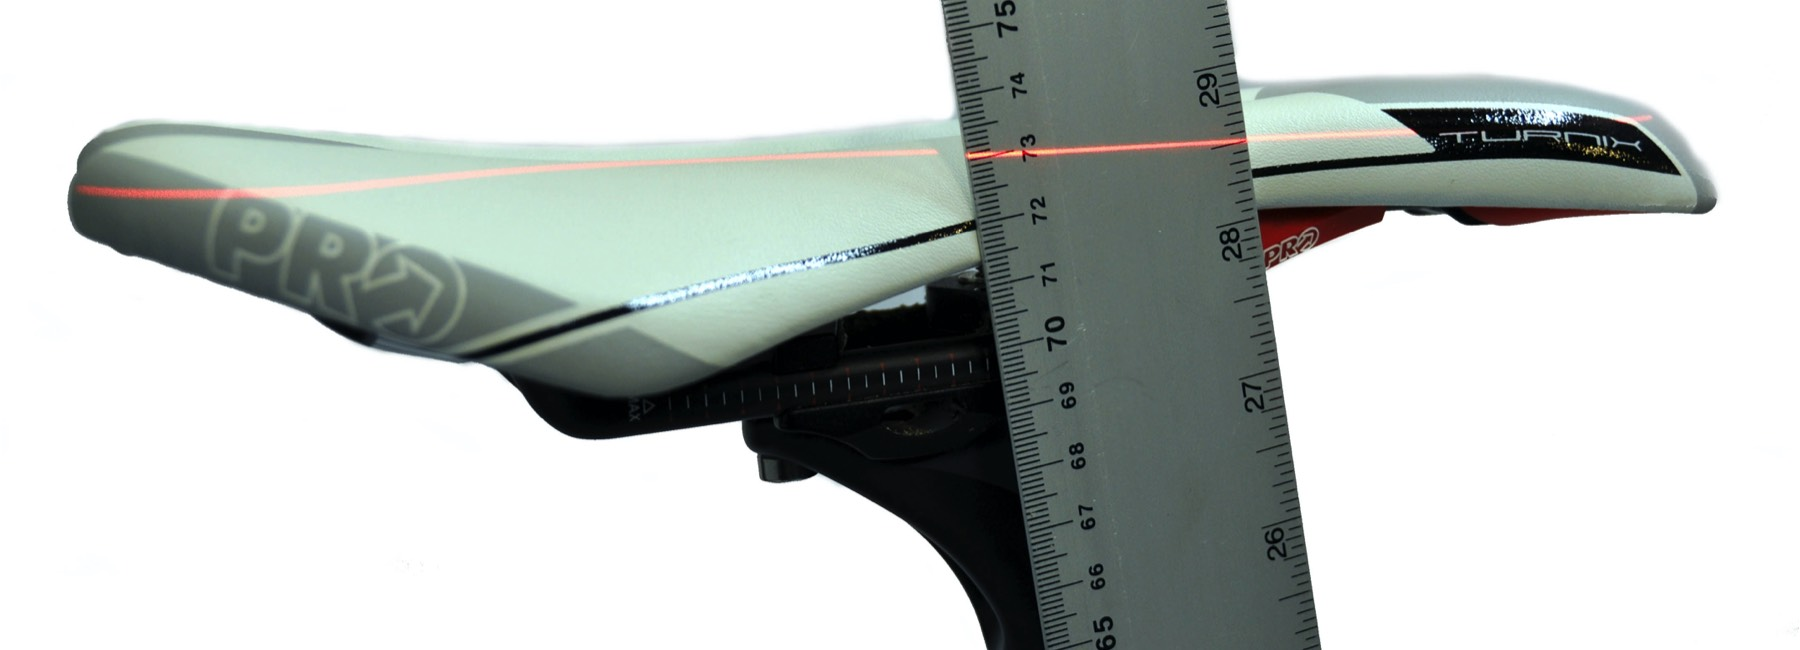 showing saddle height measurement